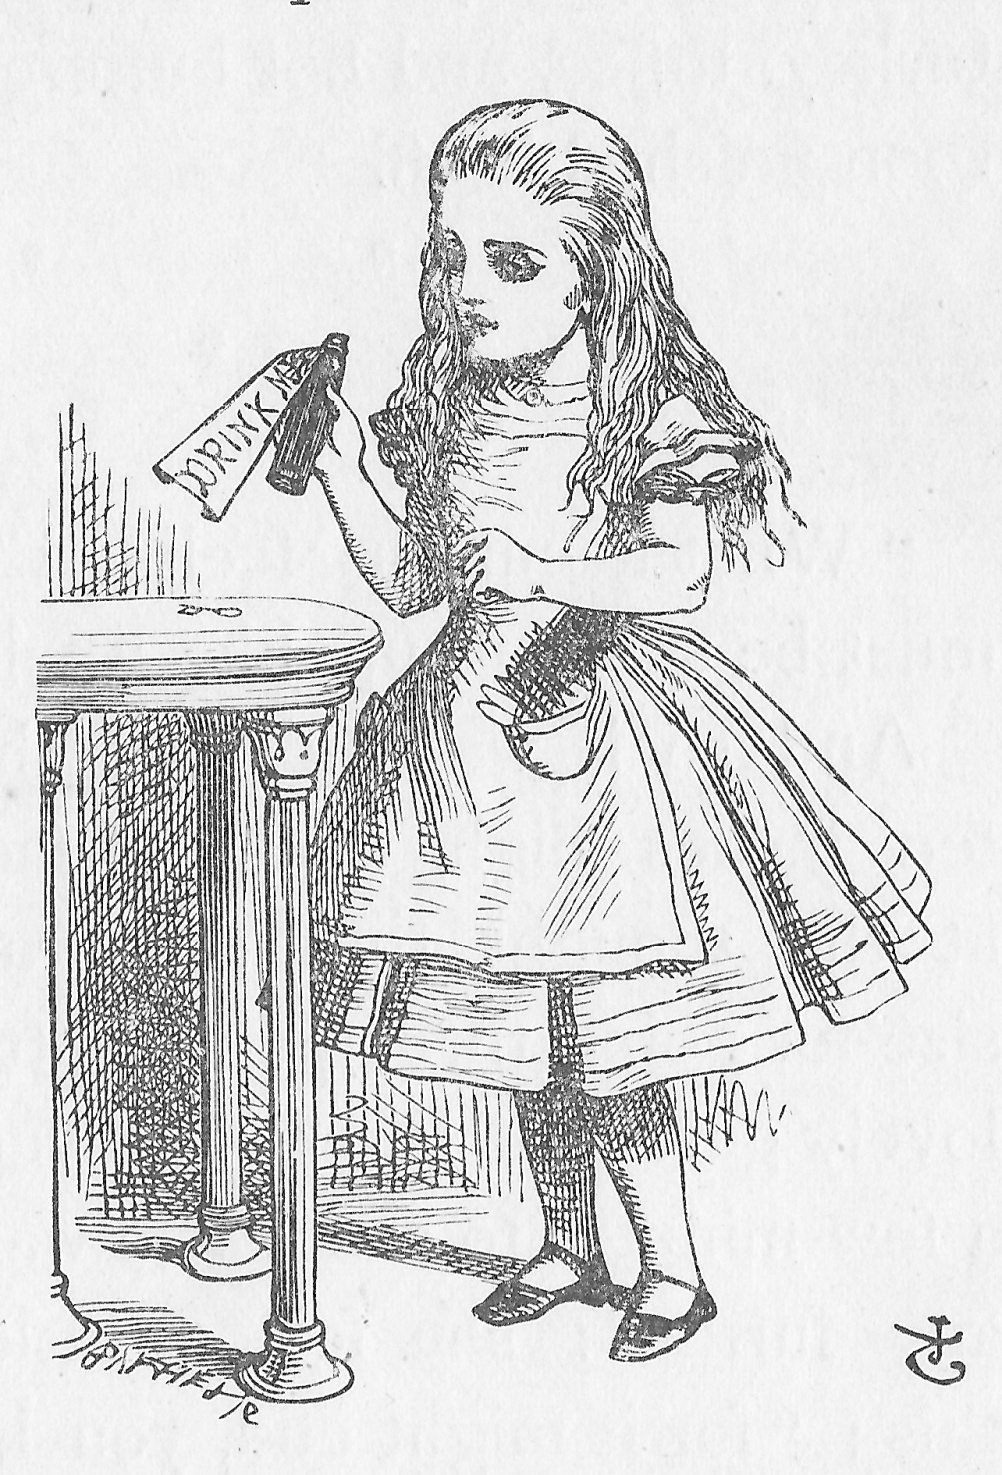 Alice's Adventures in Wonderland by Lewis Carroll, illustrated by Sir John Tenniel, 1886